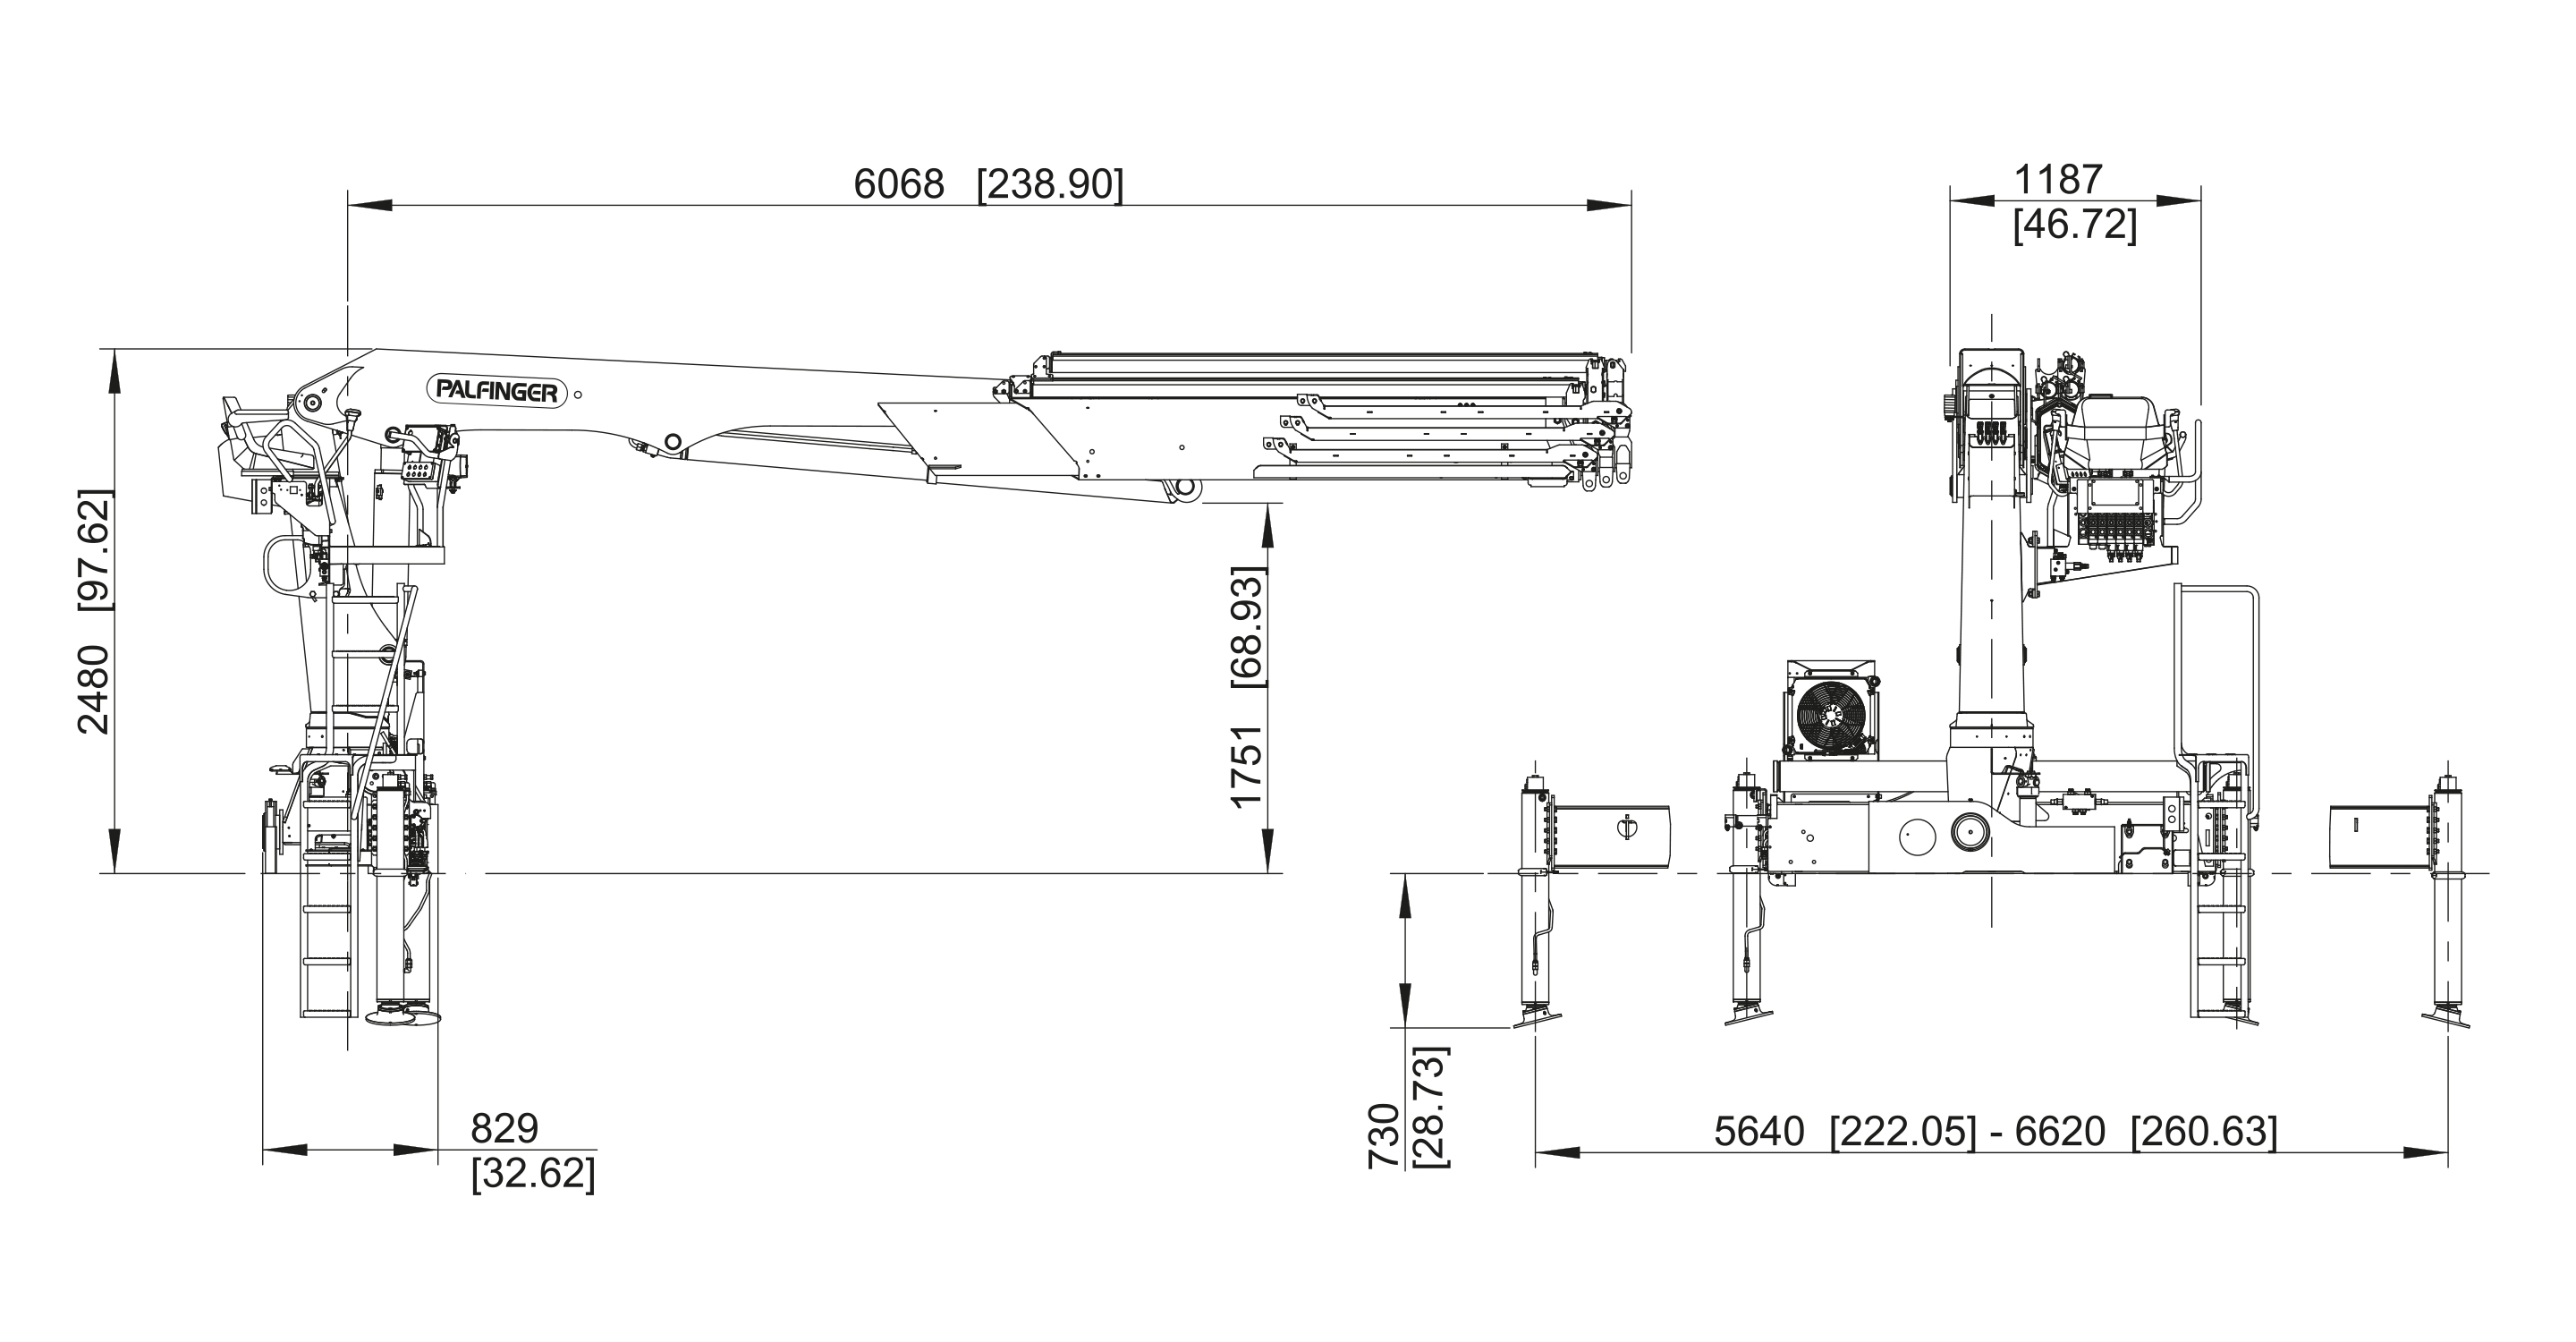 pk 18 001l sld 3 palfinger HVAC Wiring Diagrams cranes shown in the leaflet  are partially